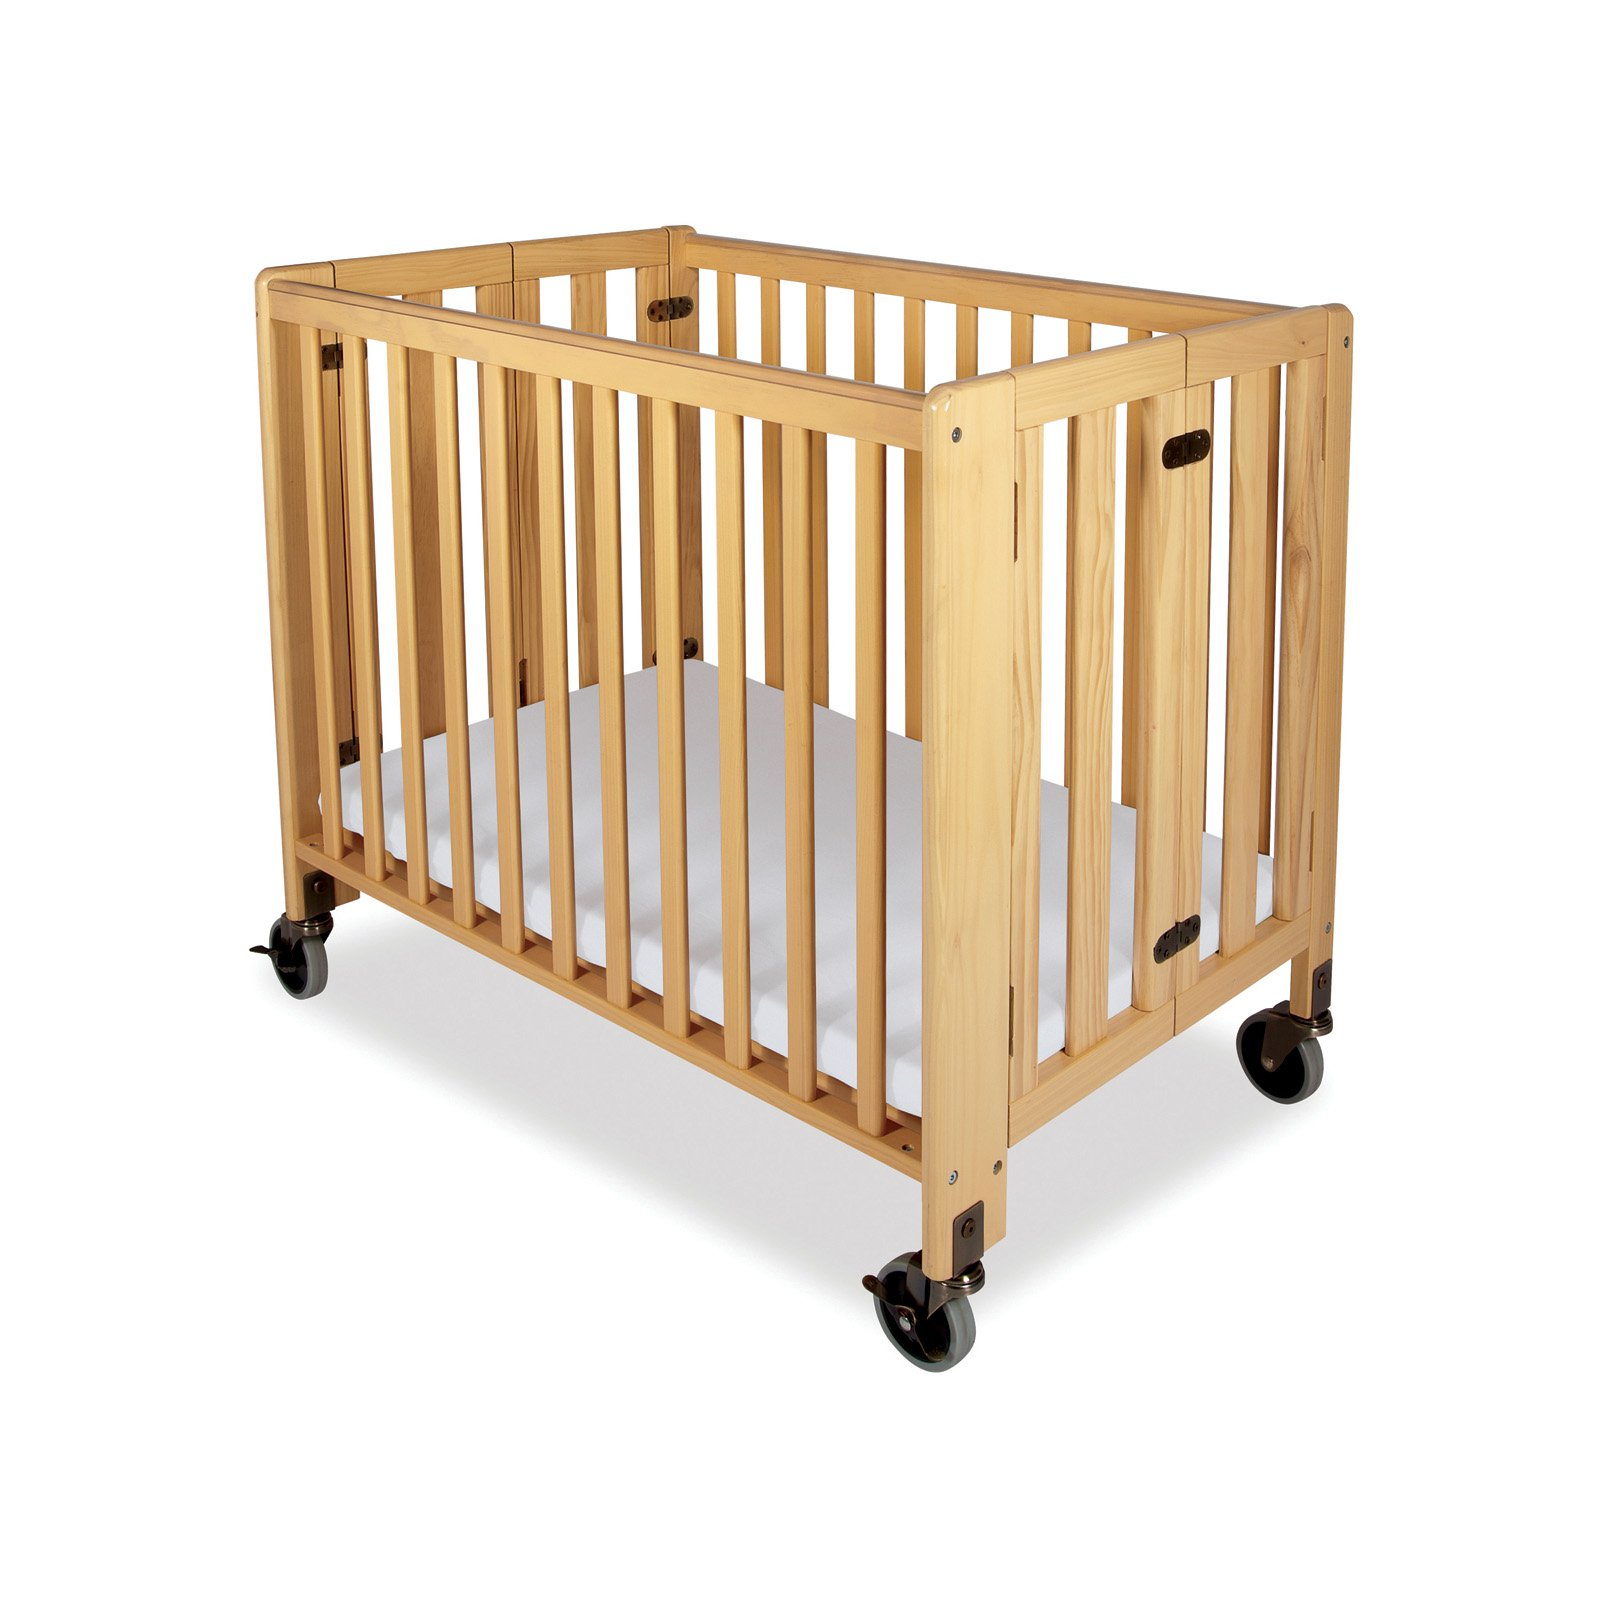 Foundations Hideaway Storable Natural Convertible Crib with Mattress